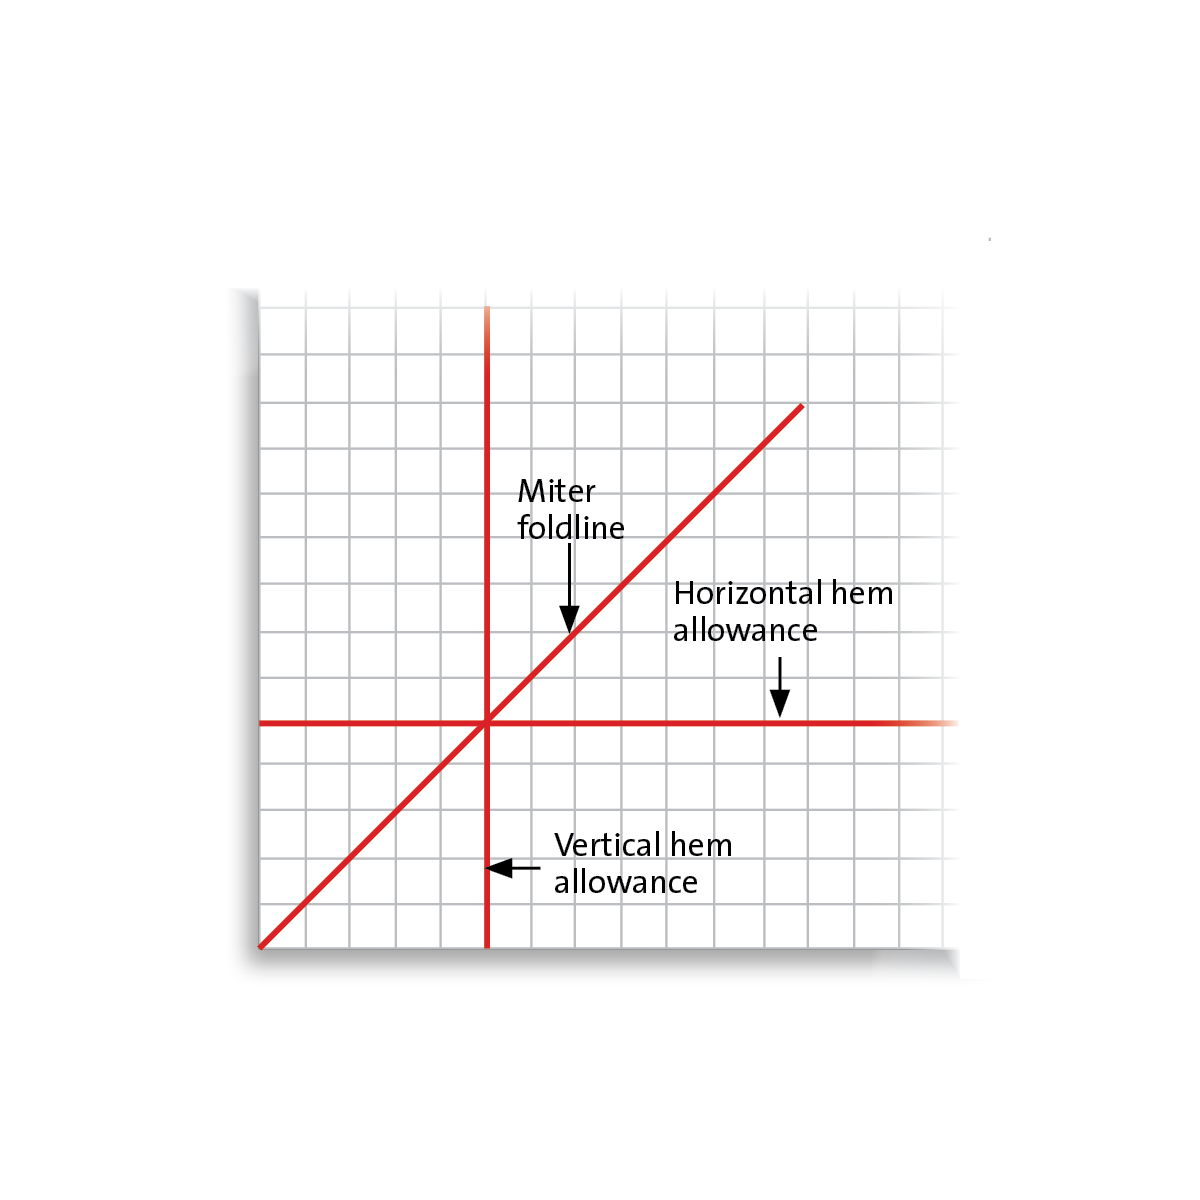 Graph paper illustration showing miter foldline intersecting horizontal hem allowance line and vertical hem allowance line